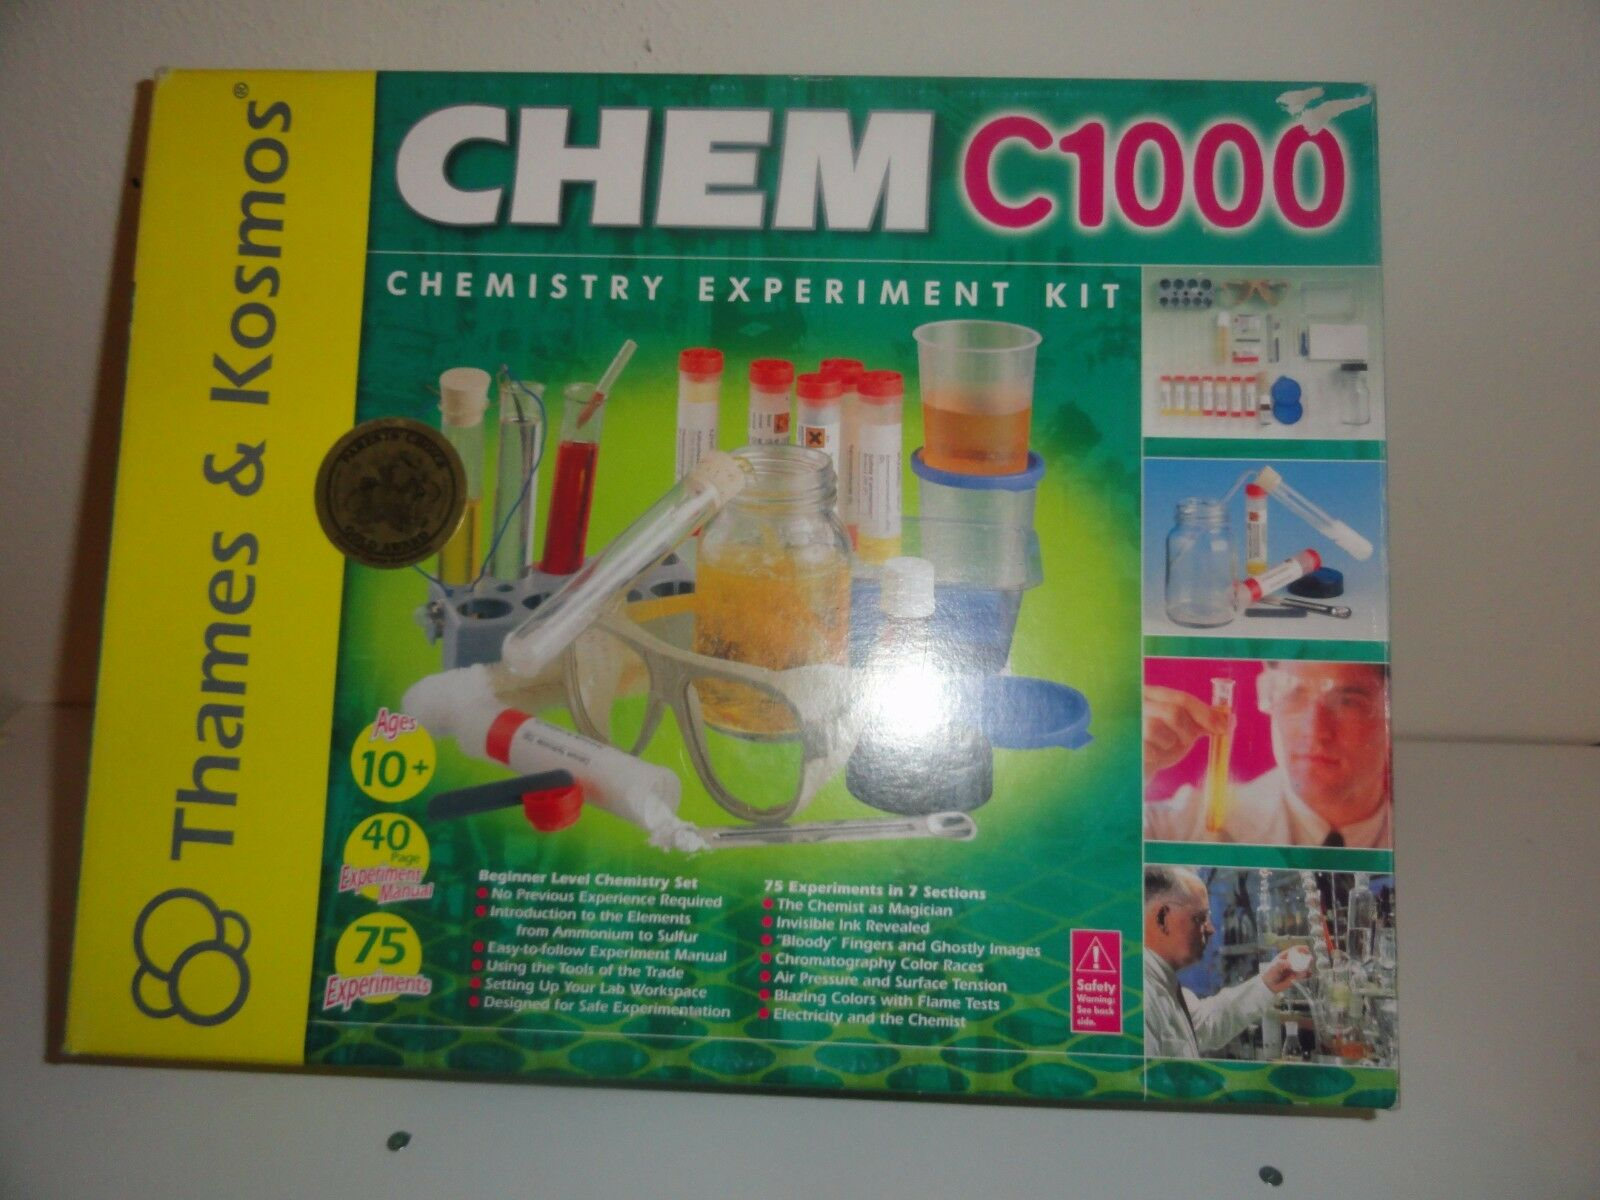 CHEM C1000 CHEMISTRY EXPERIMENT KIT